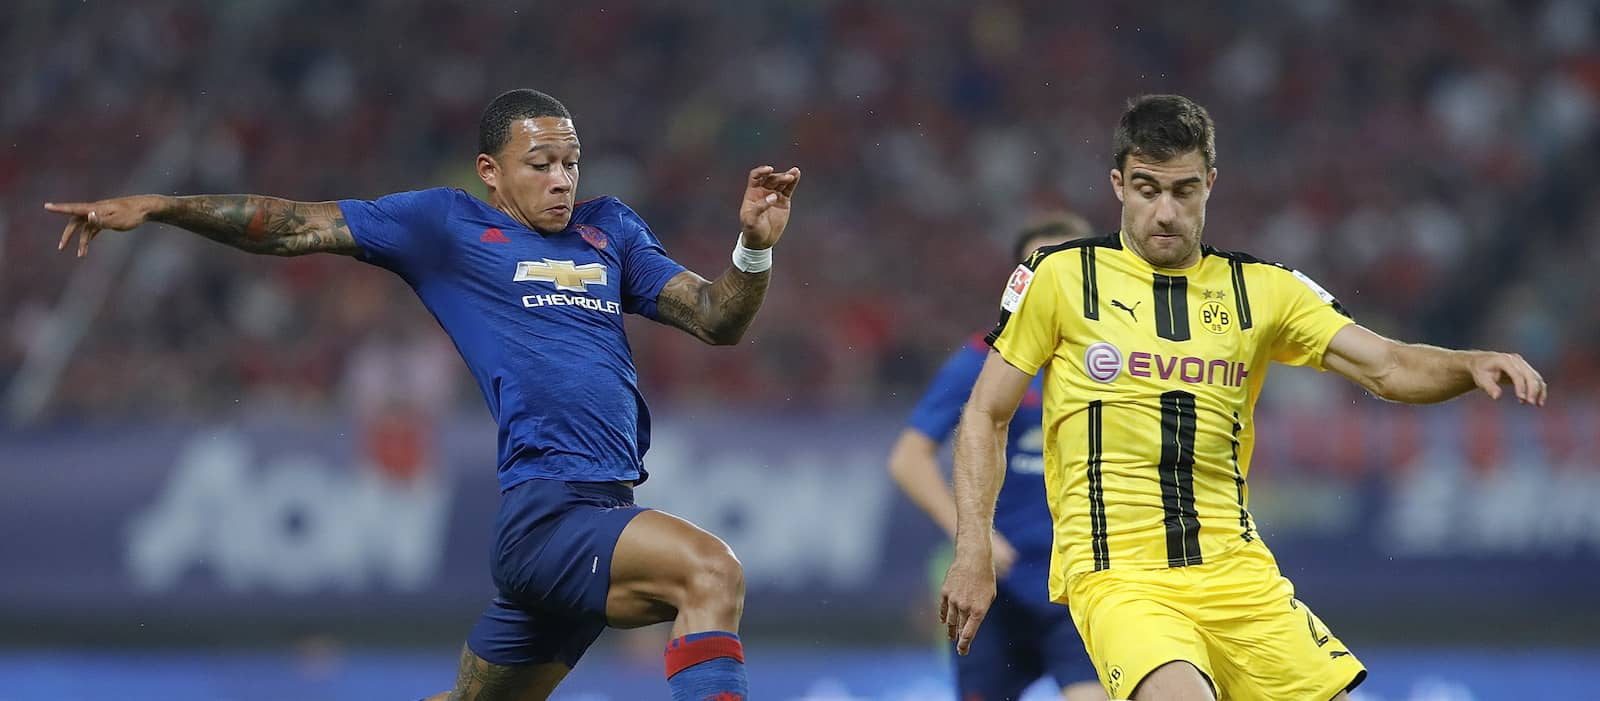 Manchester United willing to listen to offers for Memphis Depay and Bastian Schweinsteiger – report